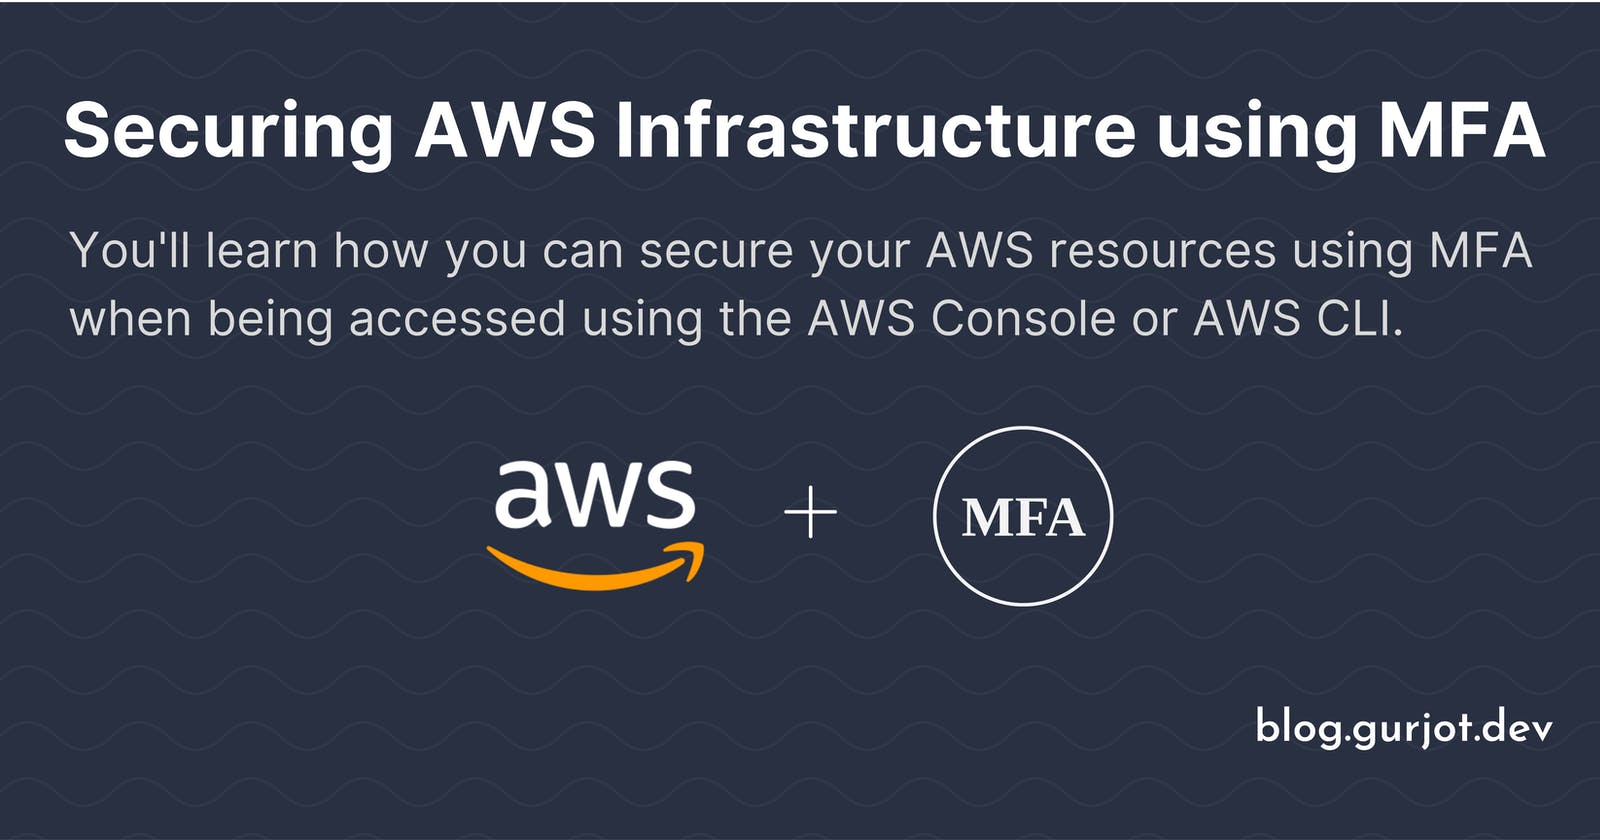 Securing AWS Infrastructure using MFA